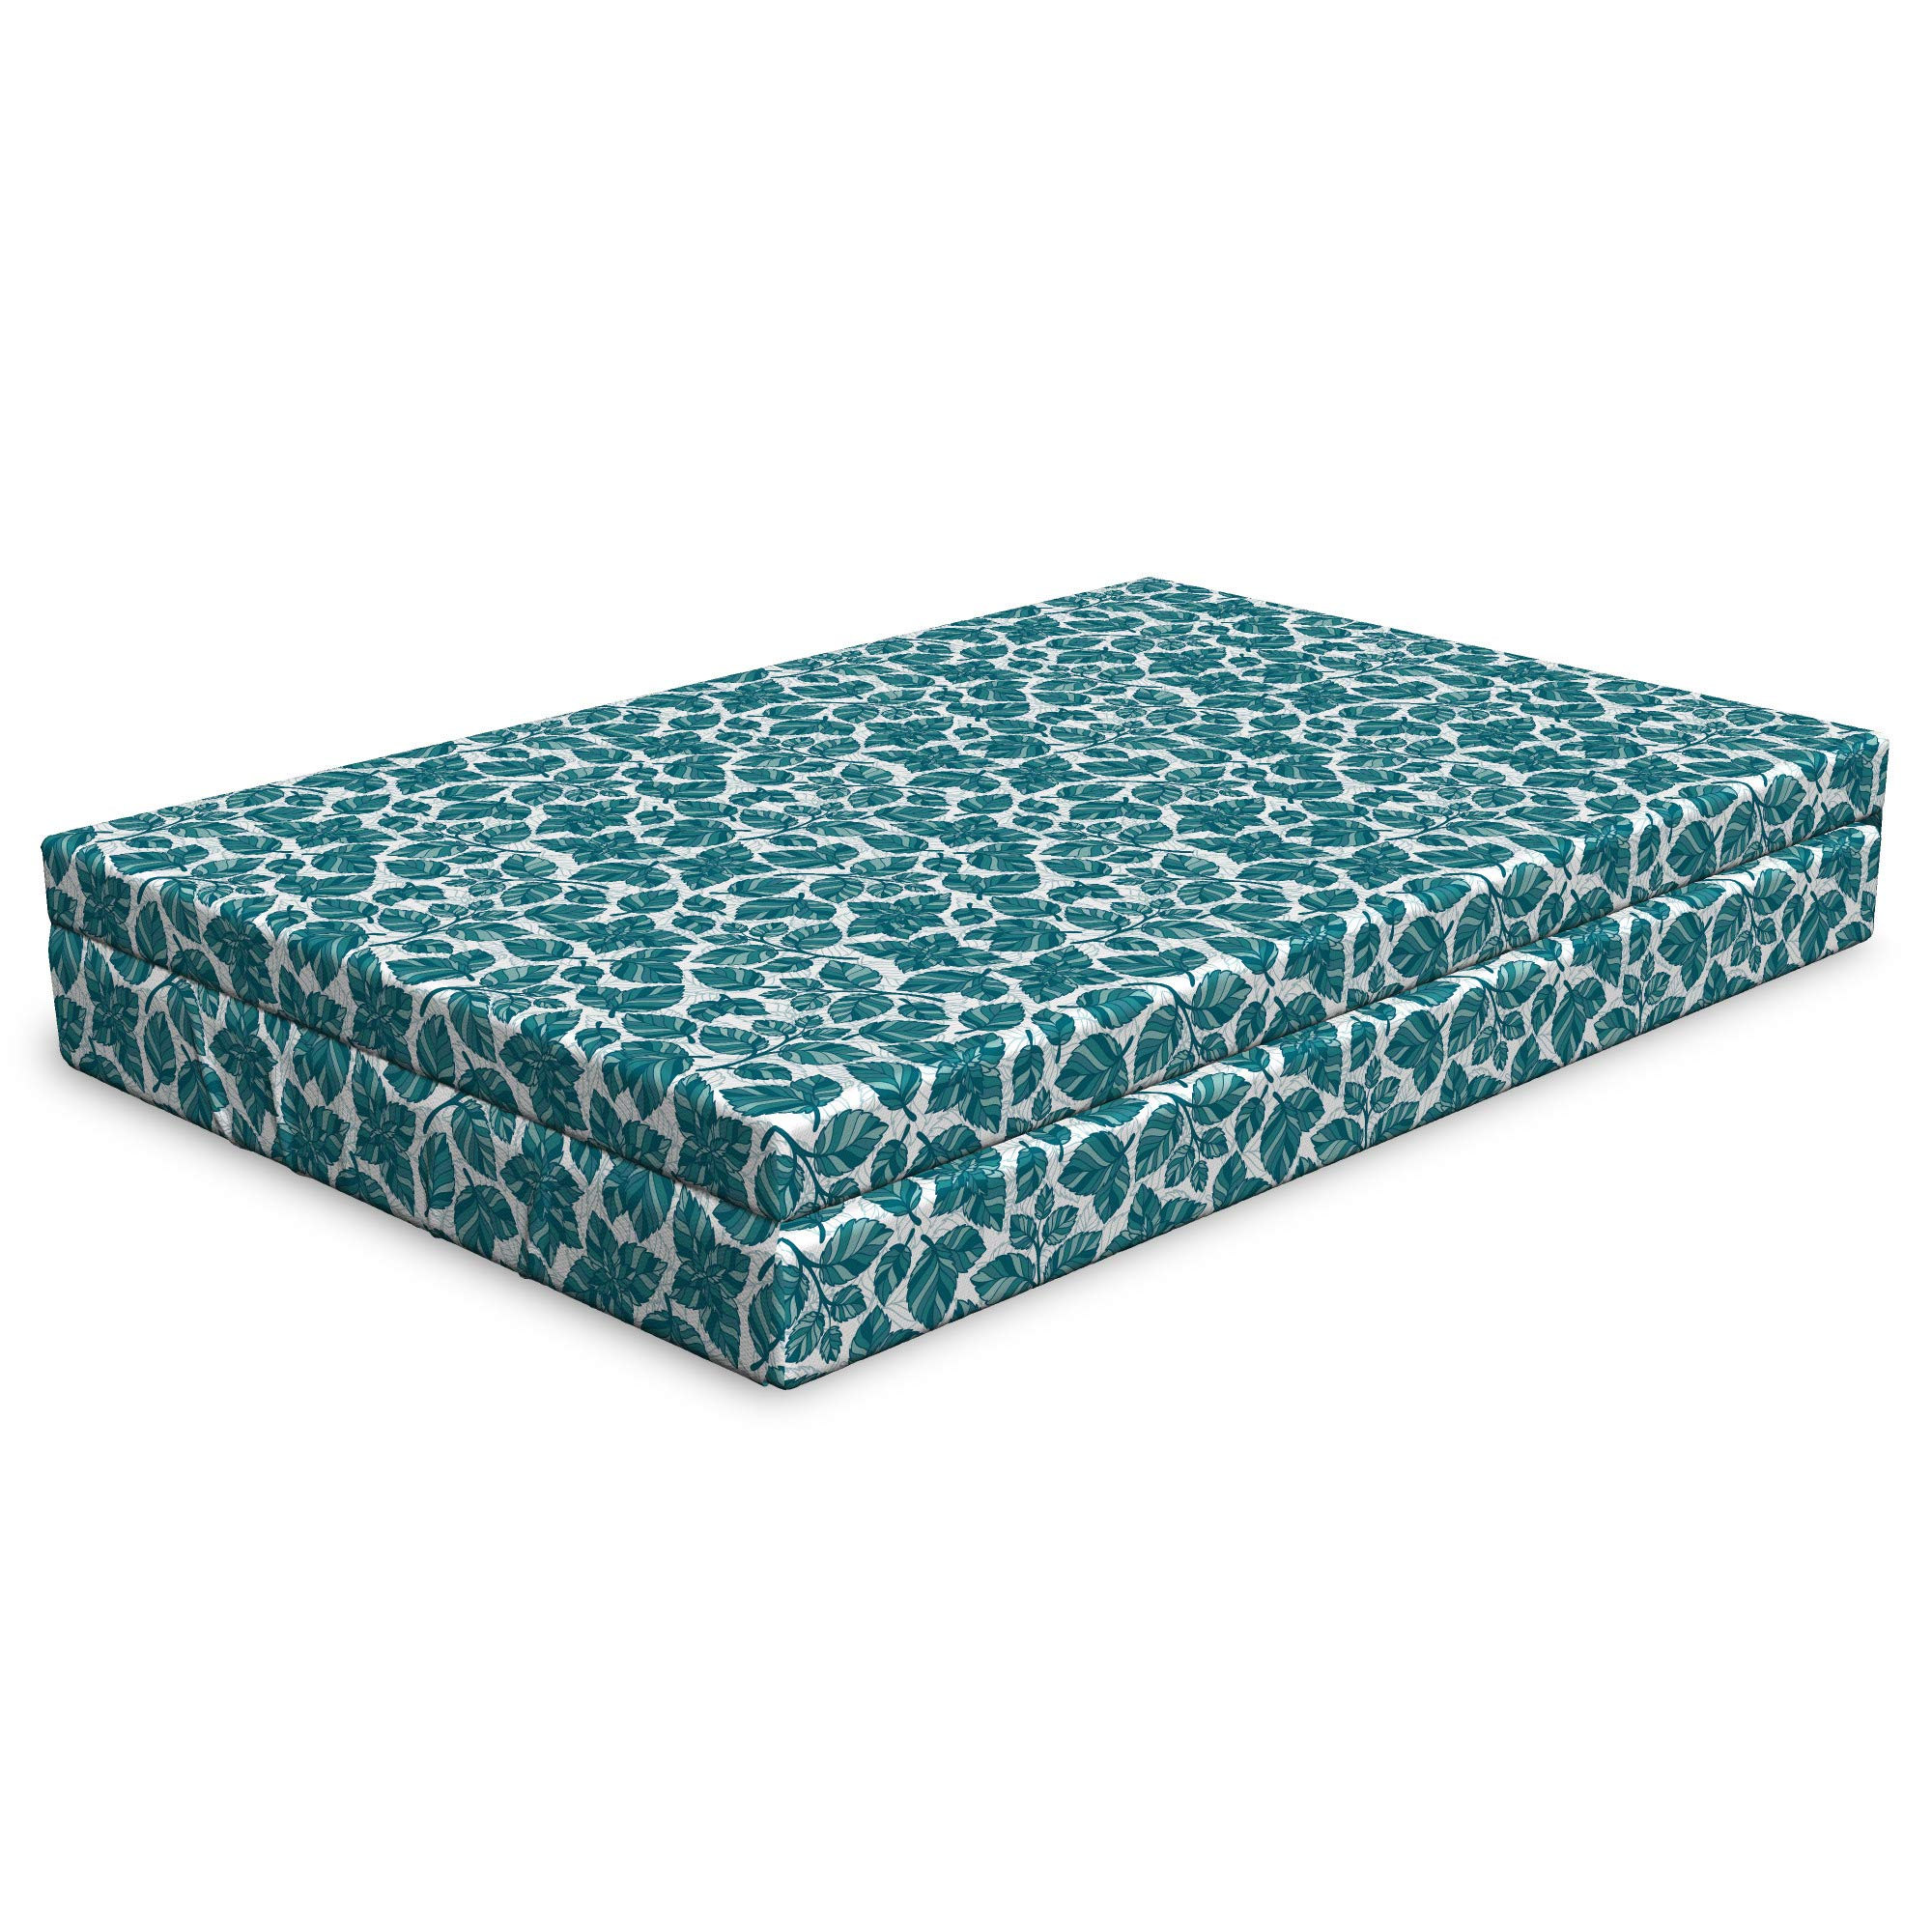 Lunarable Teal and White Dog Bed, Natural Peppermint Leaves Illustration Menthol Medical Botanical Doodle, Durable Washable Mat with Decorative Fabric Cover, 48'' x 32'' x 6'', Teal and White